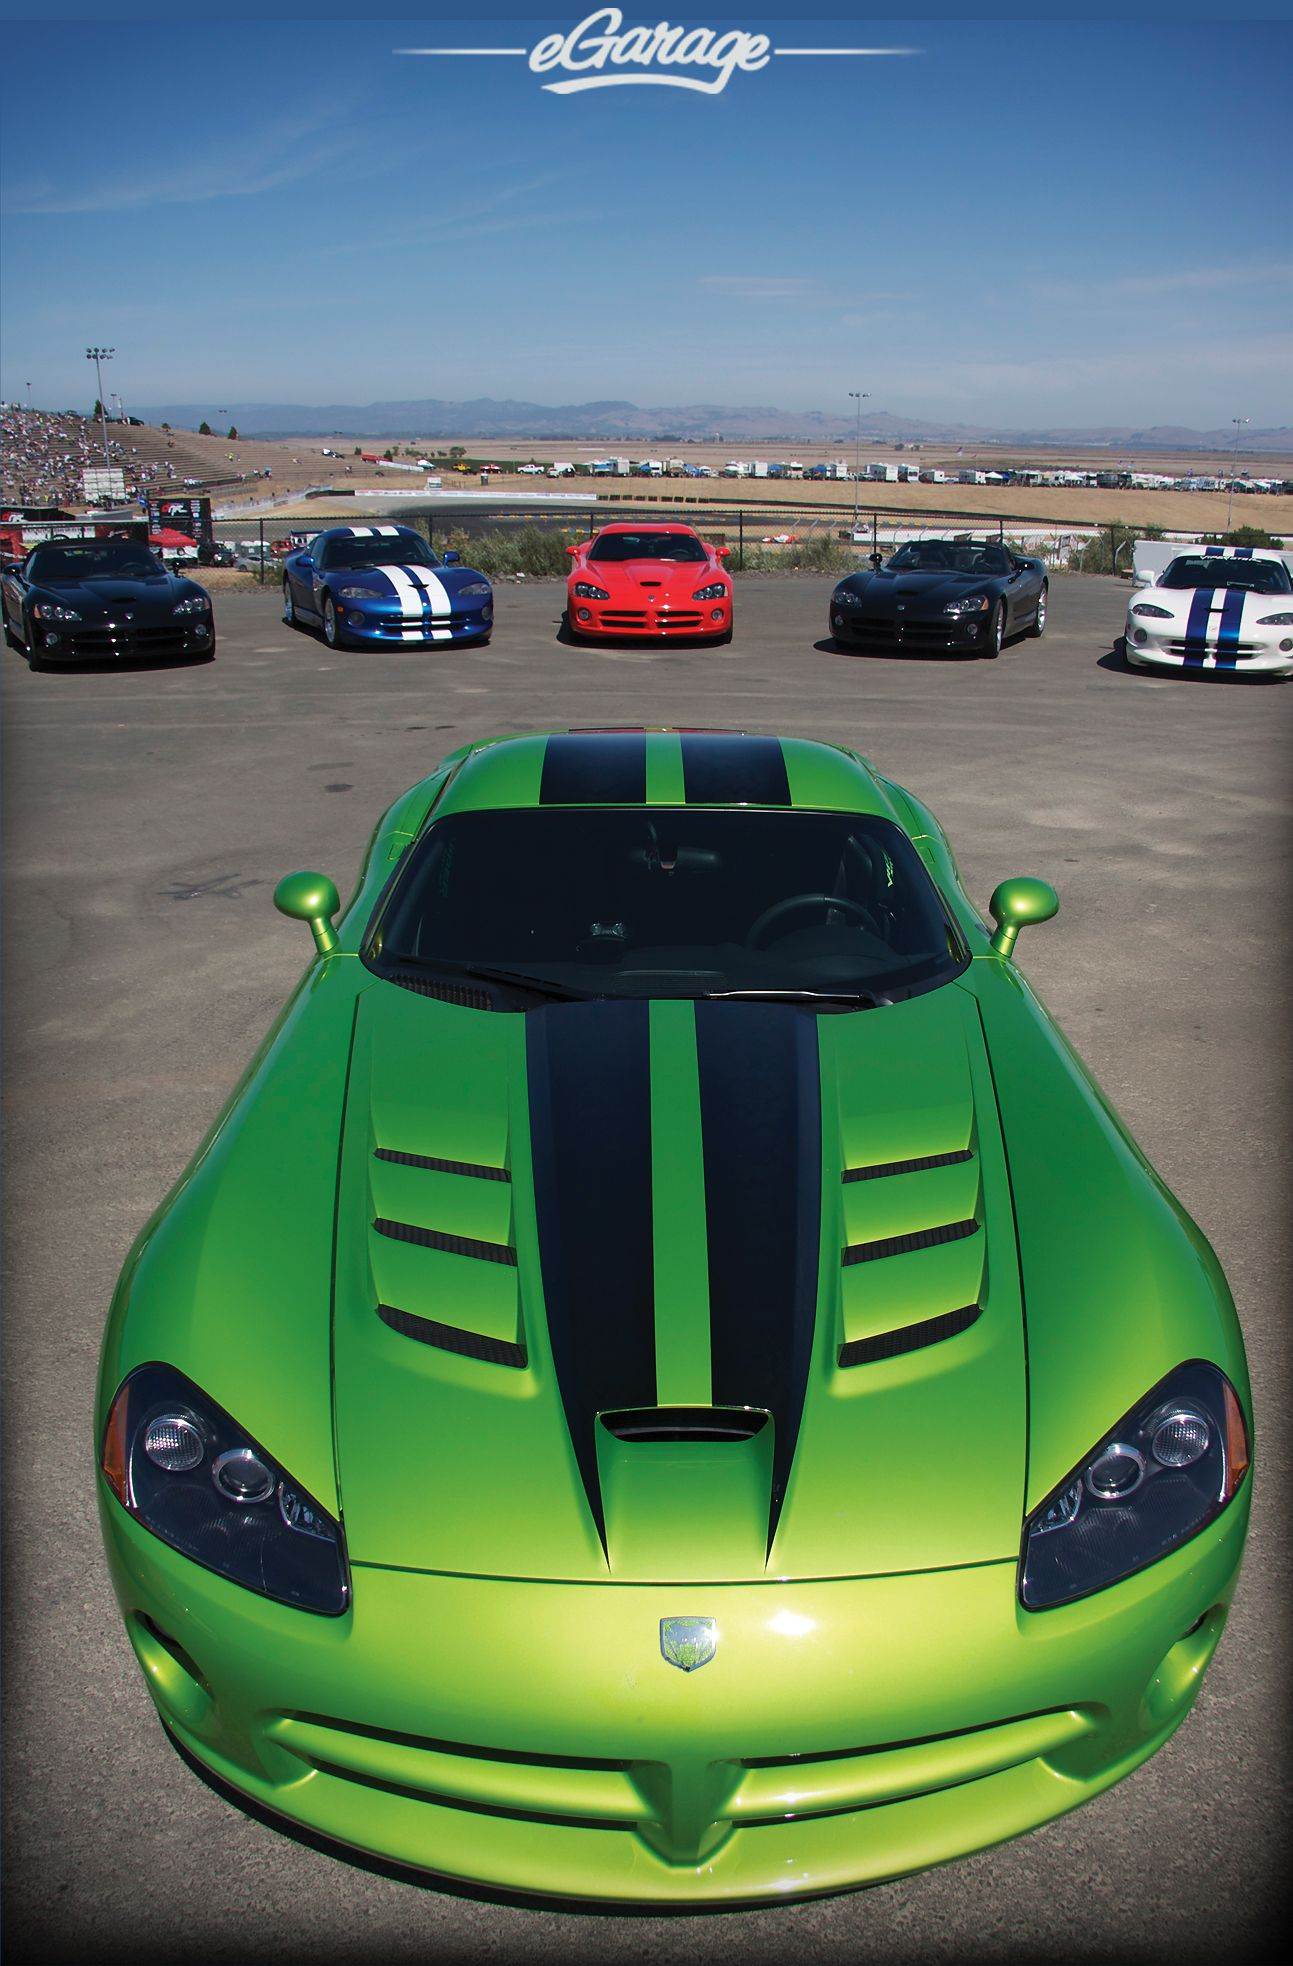 Viper Green Car With Images Dodge Viper Hot Rods Cars Muscle